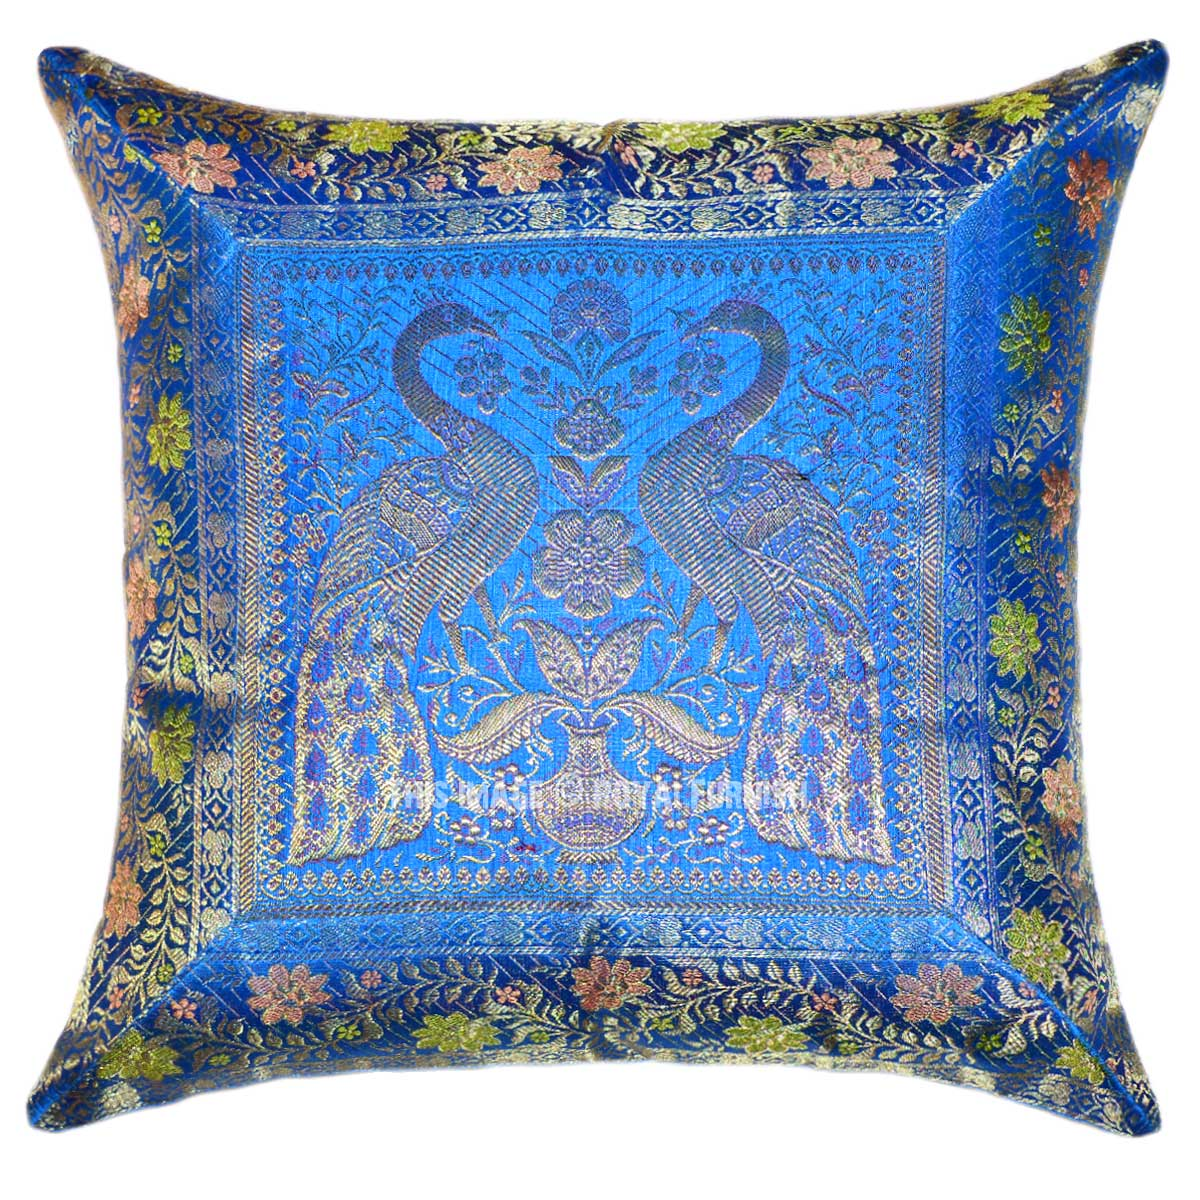 Turquoise Blue Two Peacocks Featuring Silk Throw Pillow Case - RoyalFurnish.com